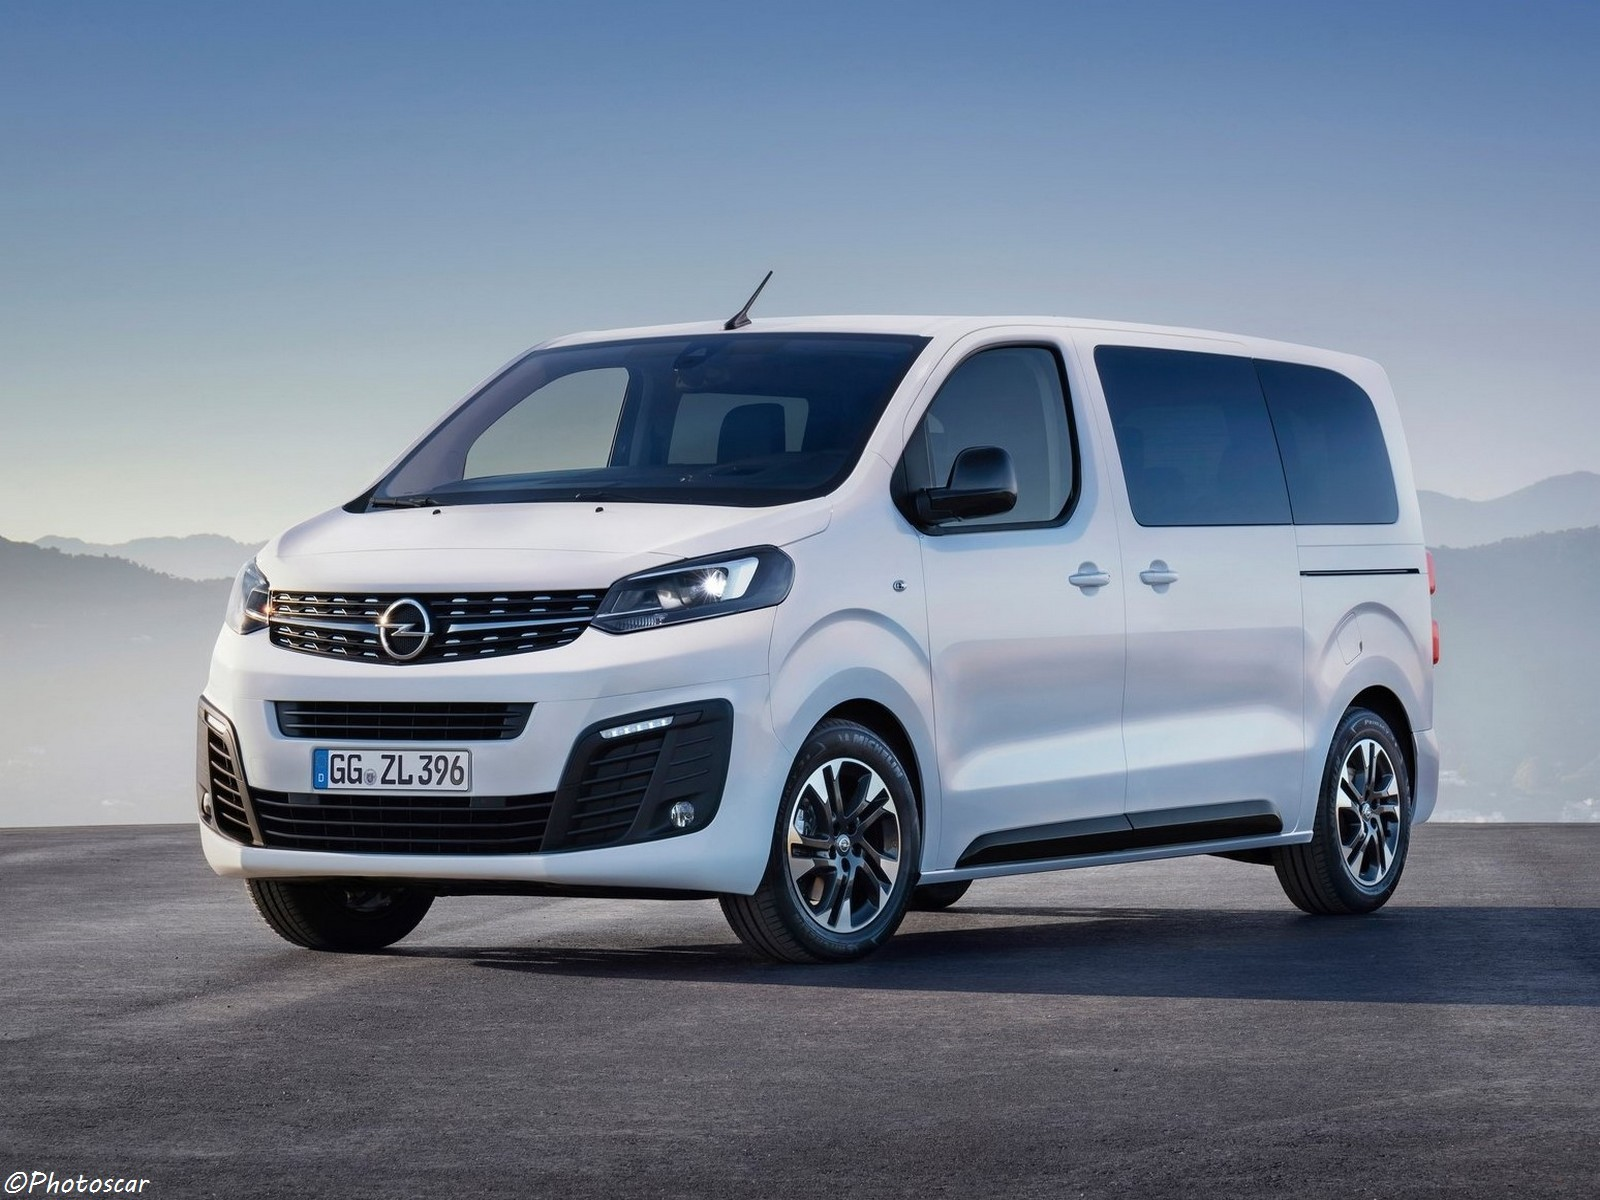 Opel Zafira Life 2020 – Une apparence puissante avec des formes claires